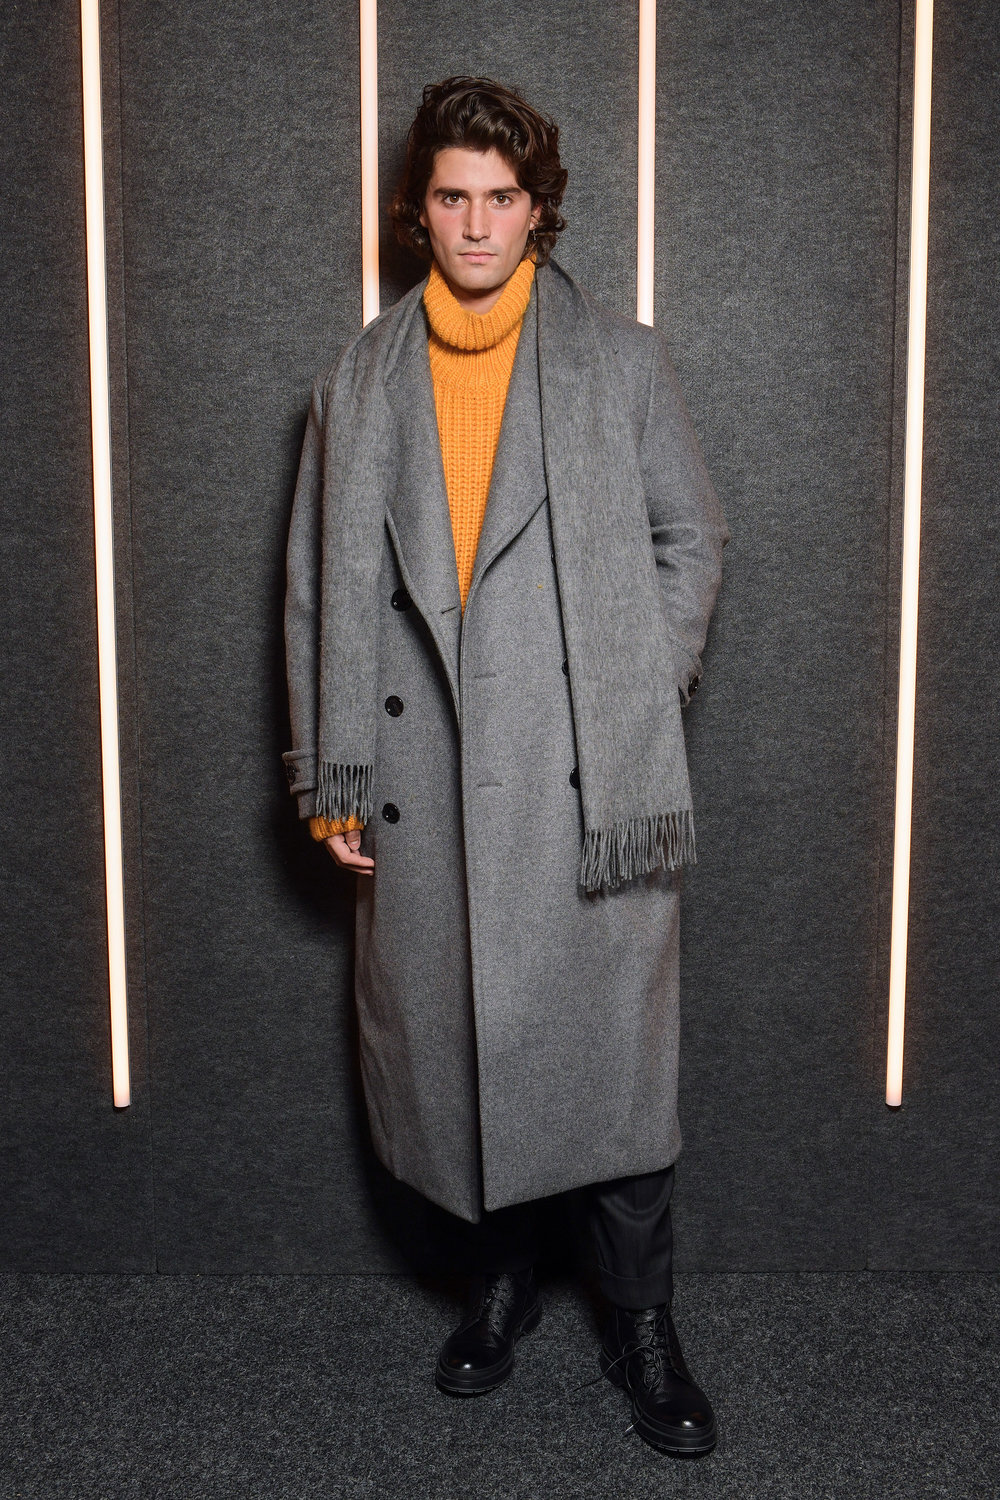 Marc Forne backstage at the BOSS Fall/Winter 2019 show at Basketball City during New York Fashion Week on Wednesday, February 13, in New York City. Photography, Courtesy of BOSS.